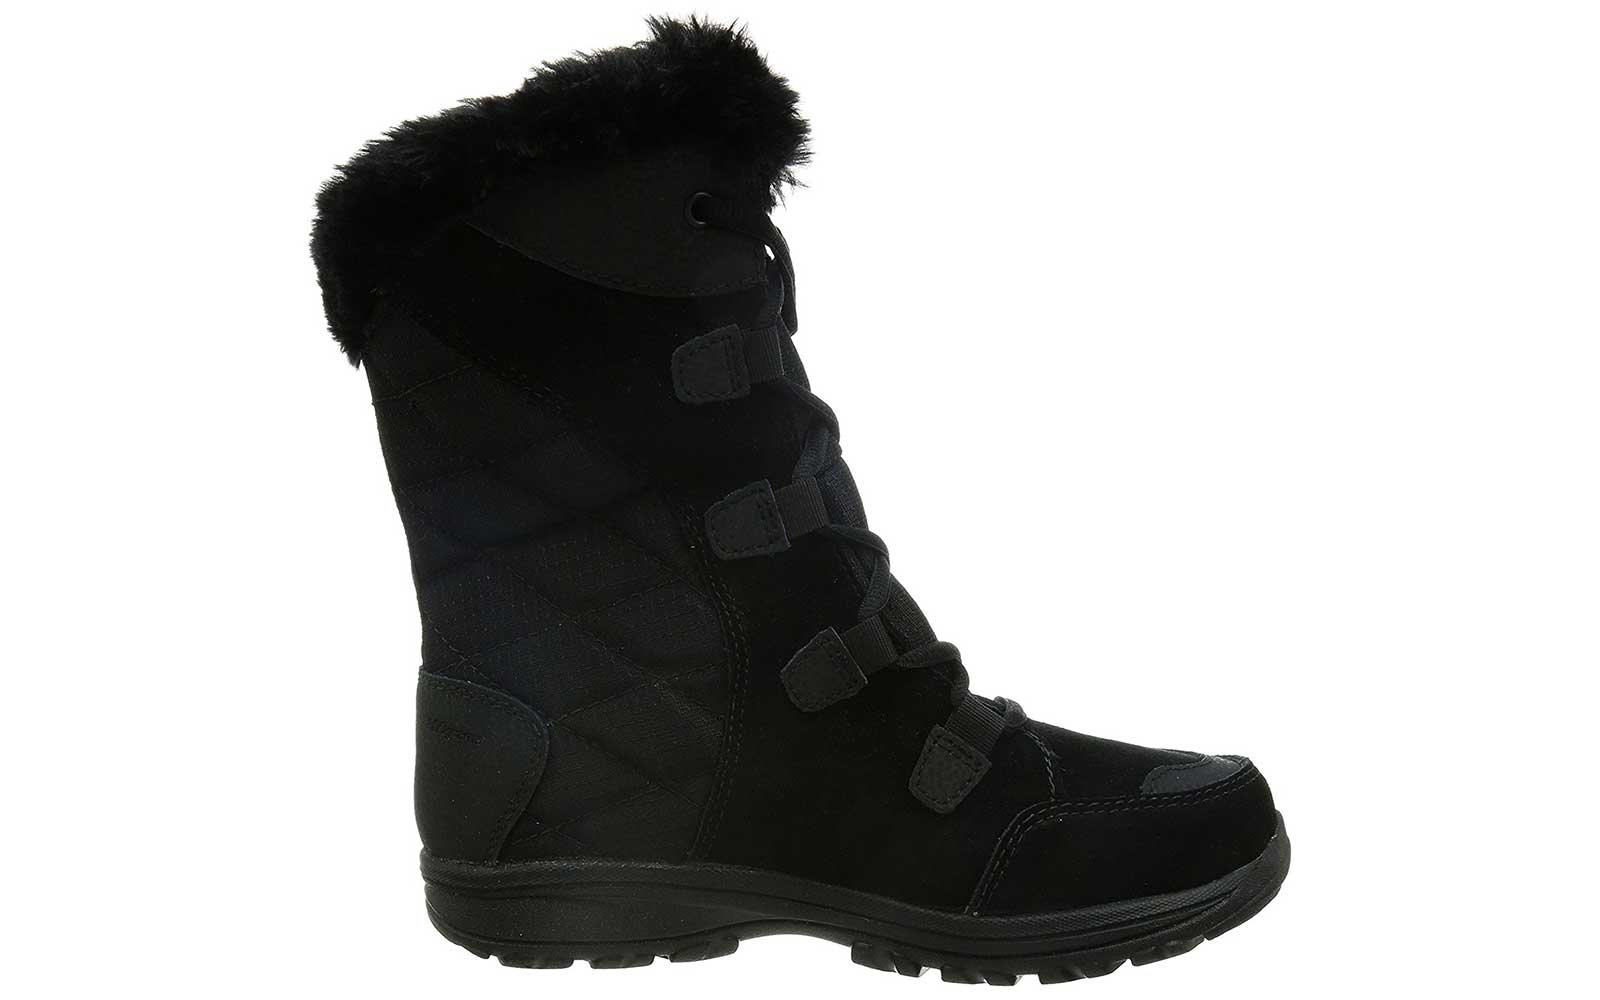 Lightweight snow boots